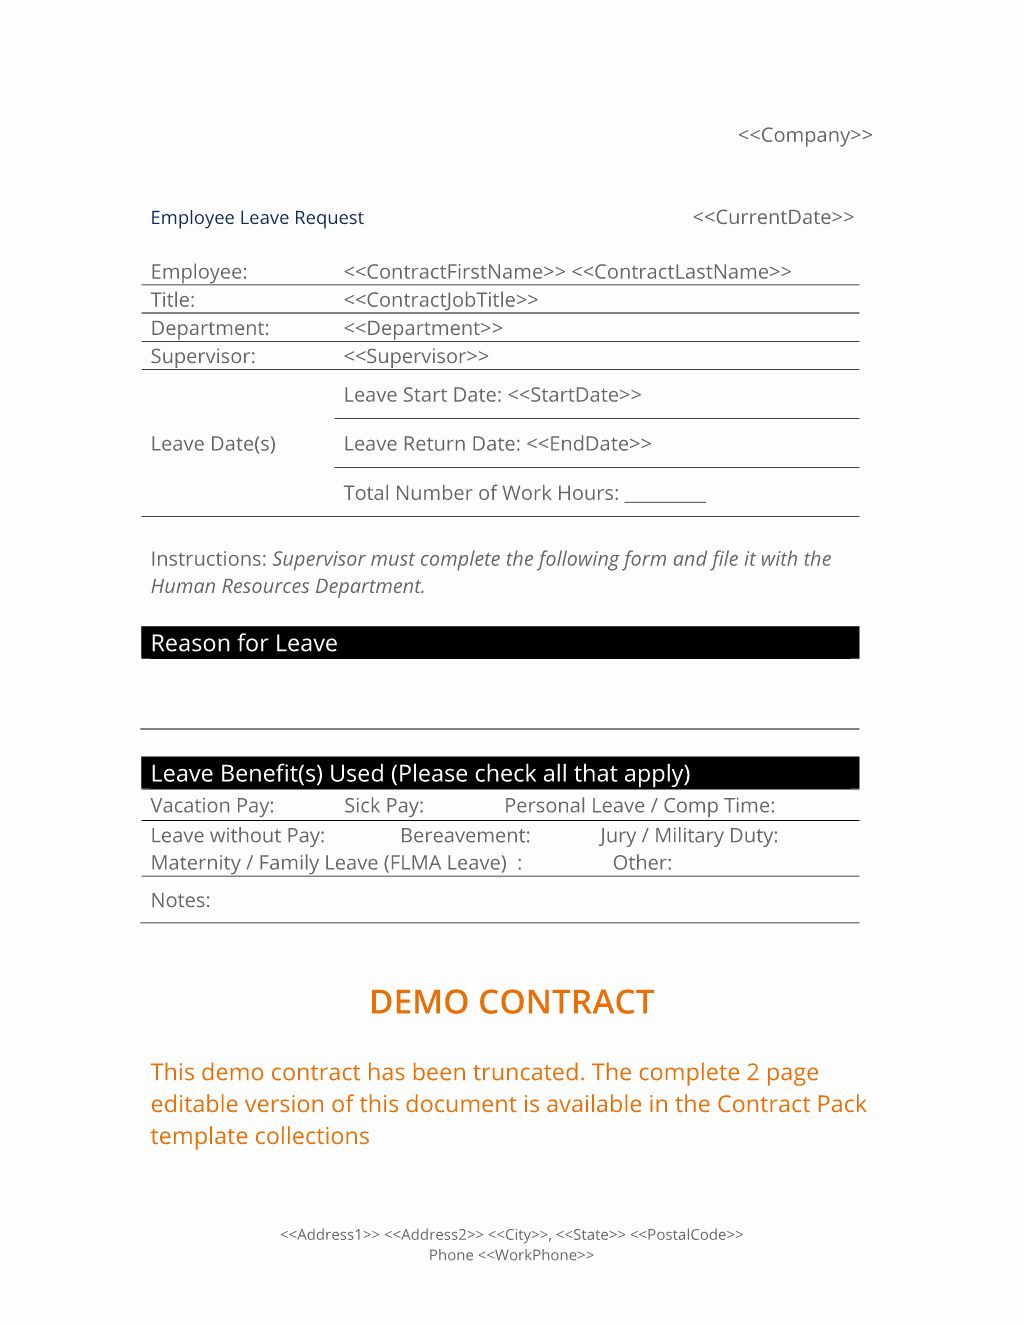 Leave Request Form Template Best Of Employee Leave Request Form 3 Easy Steps Microsoft Word Invoice Template Business Card Template Psd Word Line Leave of absence forms template